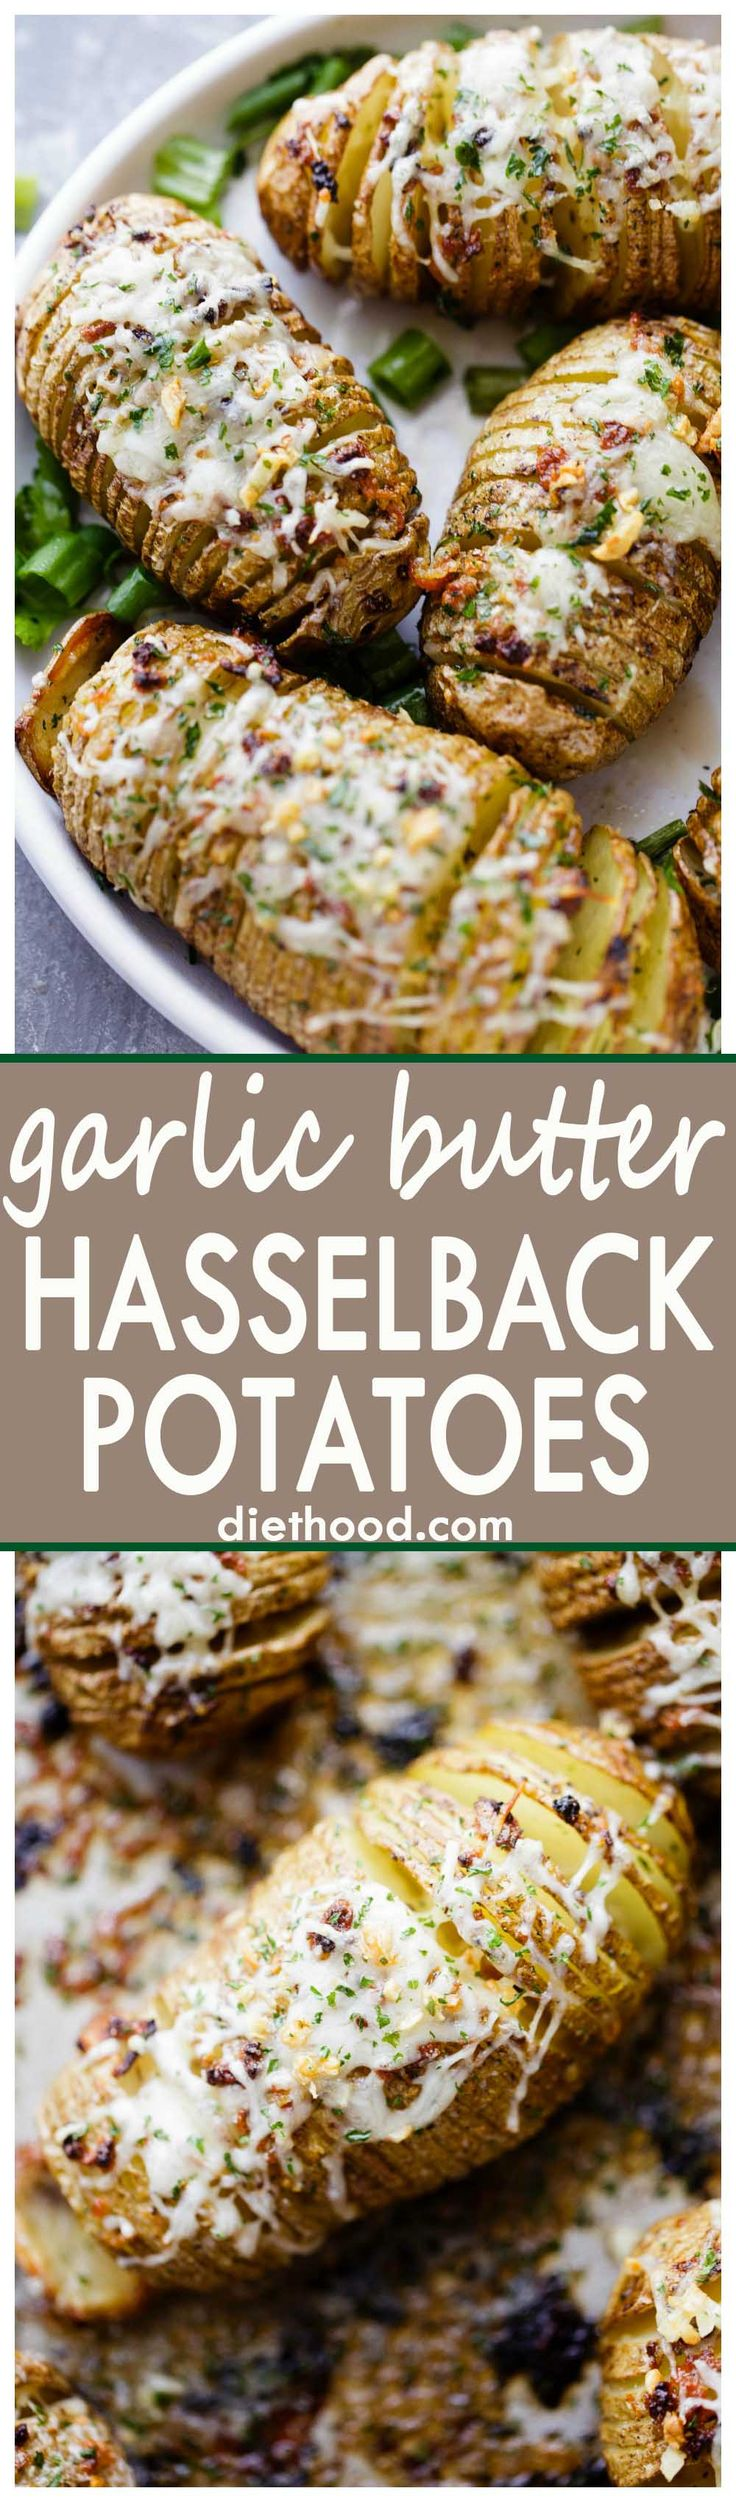 Garlic Butter Hasselback Potatoes - Perfectly tender hasselback potatoes prepared with delicious garlic butter and a sprinkle of cheese.